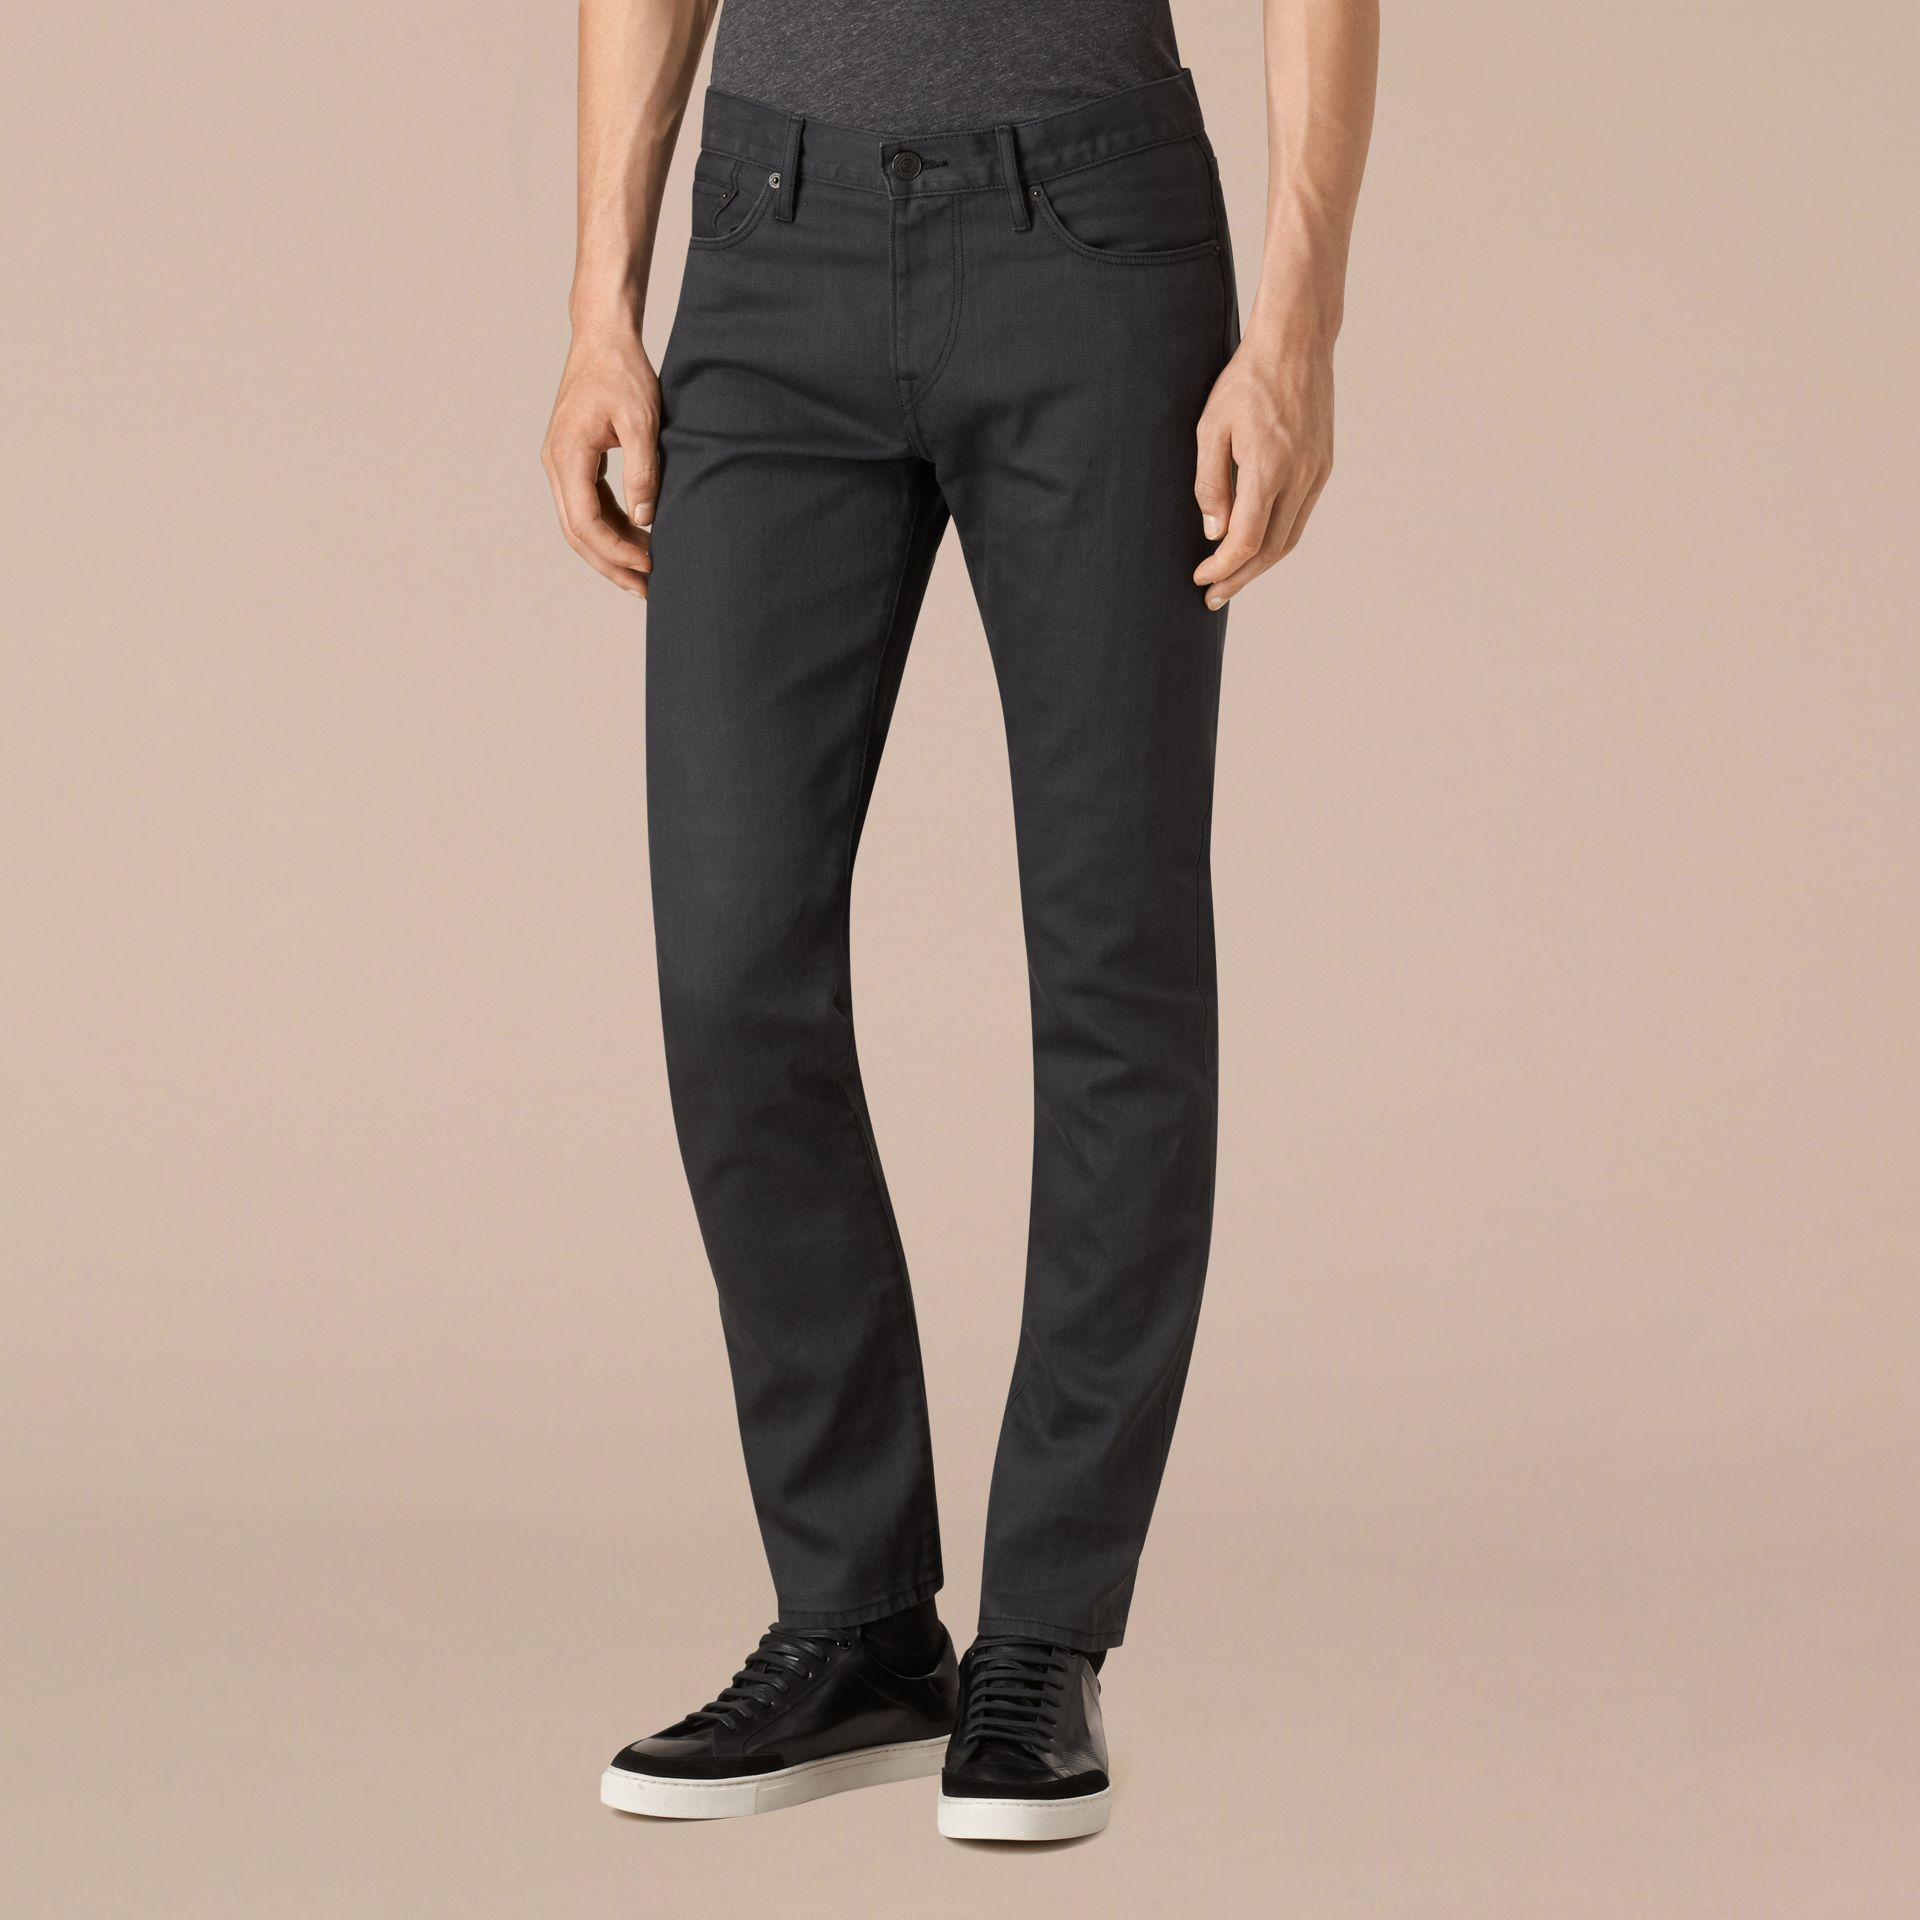 Storm grey Slim Fit Japanese Selvedge Jeans - gallery image 4